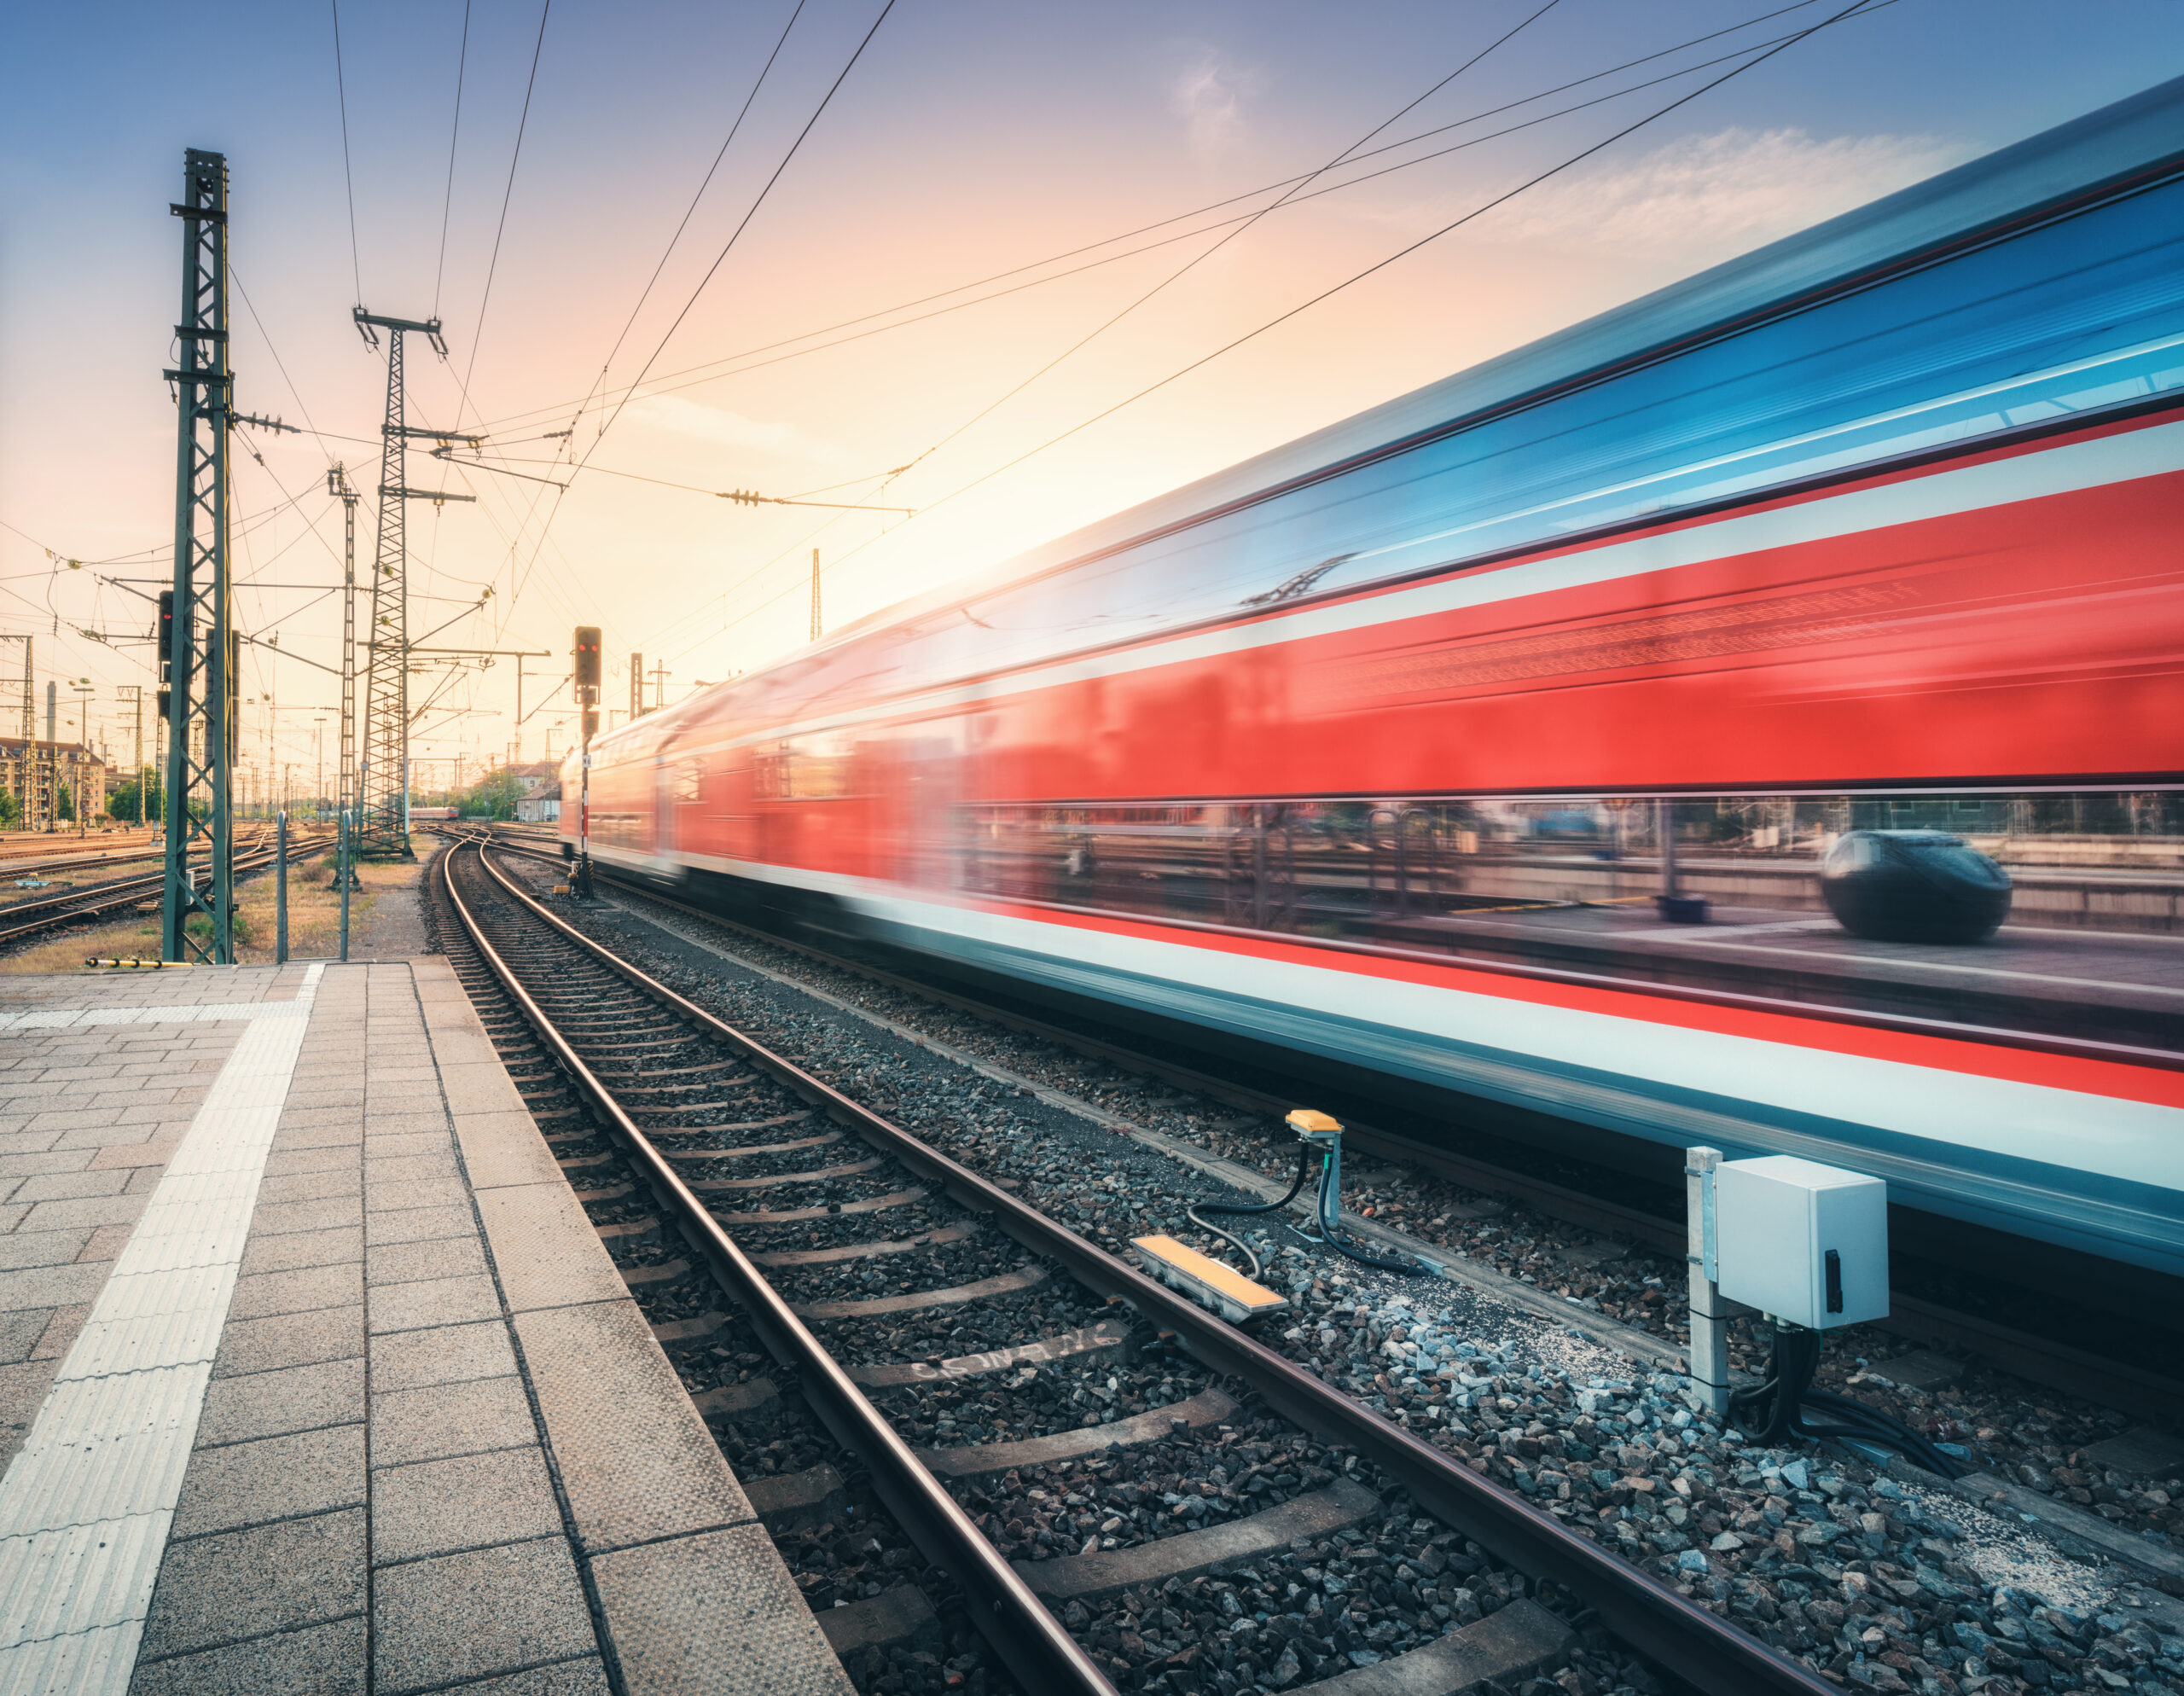 Red high speed train in motion on the railway station at colorful sunset. Blurred modern intercity train with sky reflection in windows on the railway platform. Passenger transportation. Railroad